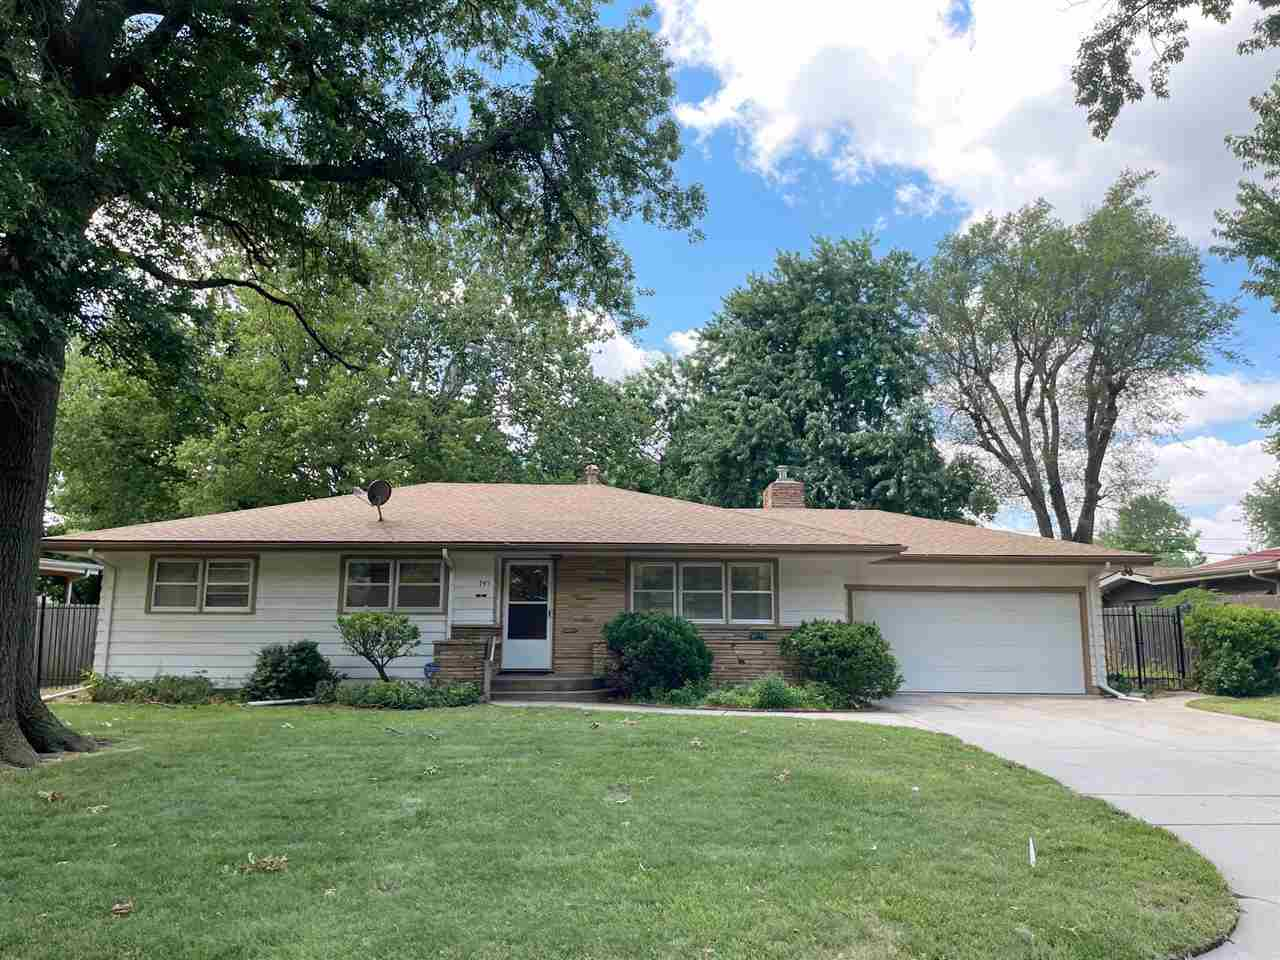 Come see this great Country Acres 3 bedroom 1.5 bath home. All the rooms are large with lots of wind